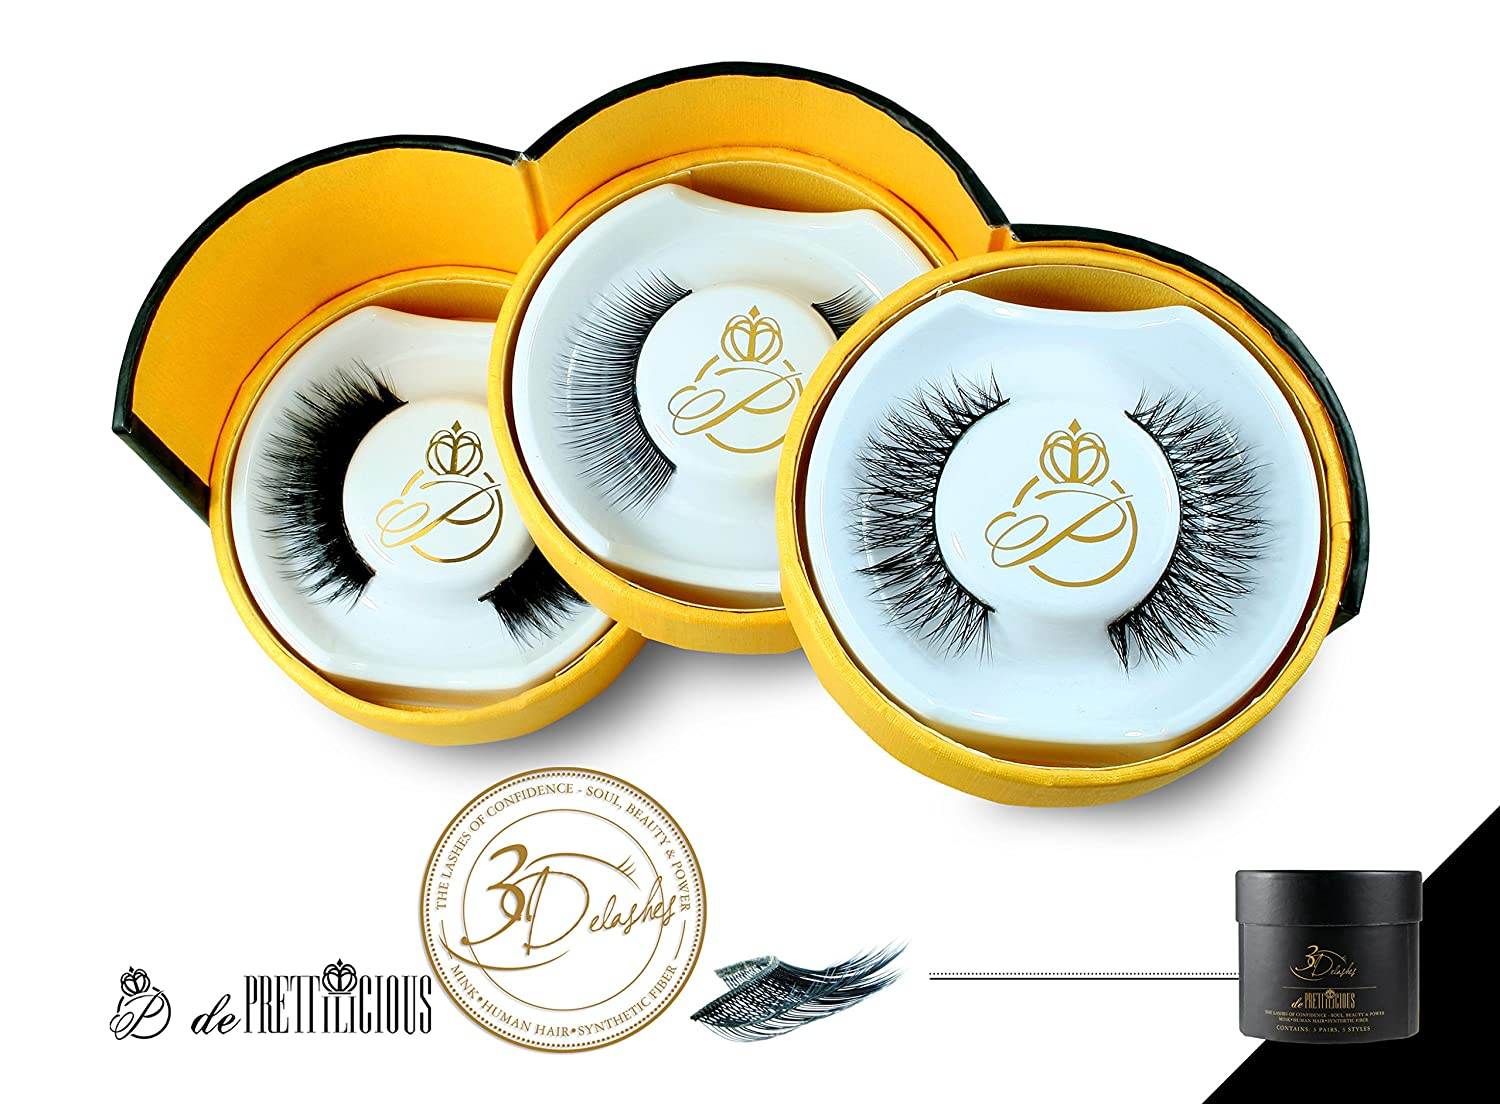 CLEARANCE SALES! 3-IN-1 Lash Collection. Mink + Human Hair + Synthetic Fiber. 3 Pairs layes False eyelashes/ lashes/ lash/ falsie/ fake eyelashes. FREE BEAUTY E-BOOK. 100% Satisfaction Guarantee. 100% Risk Free Guarantee.